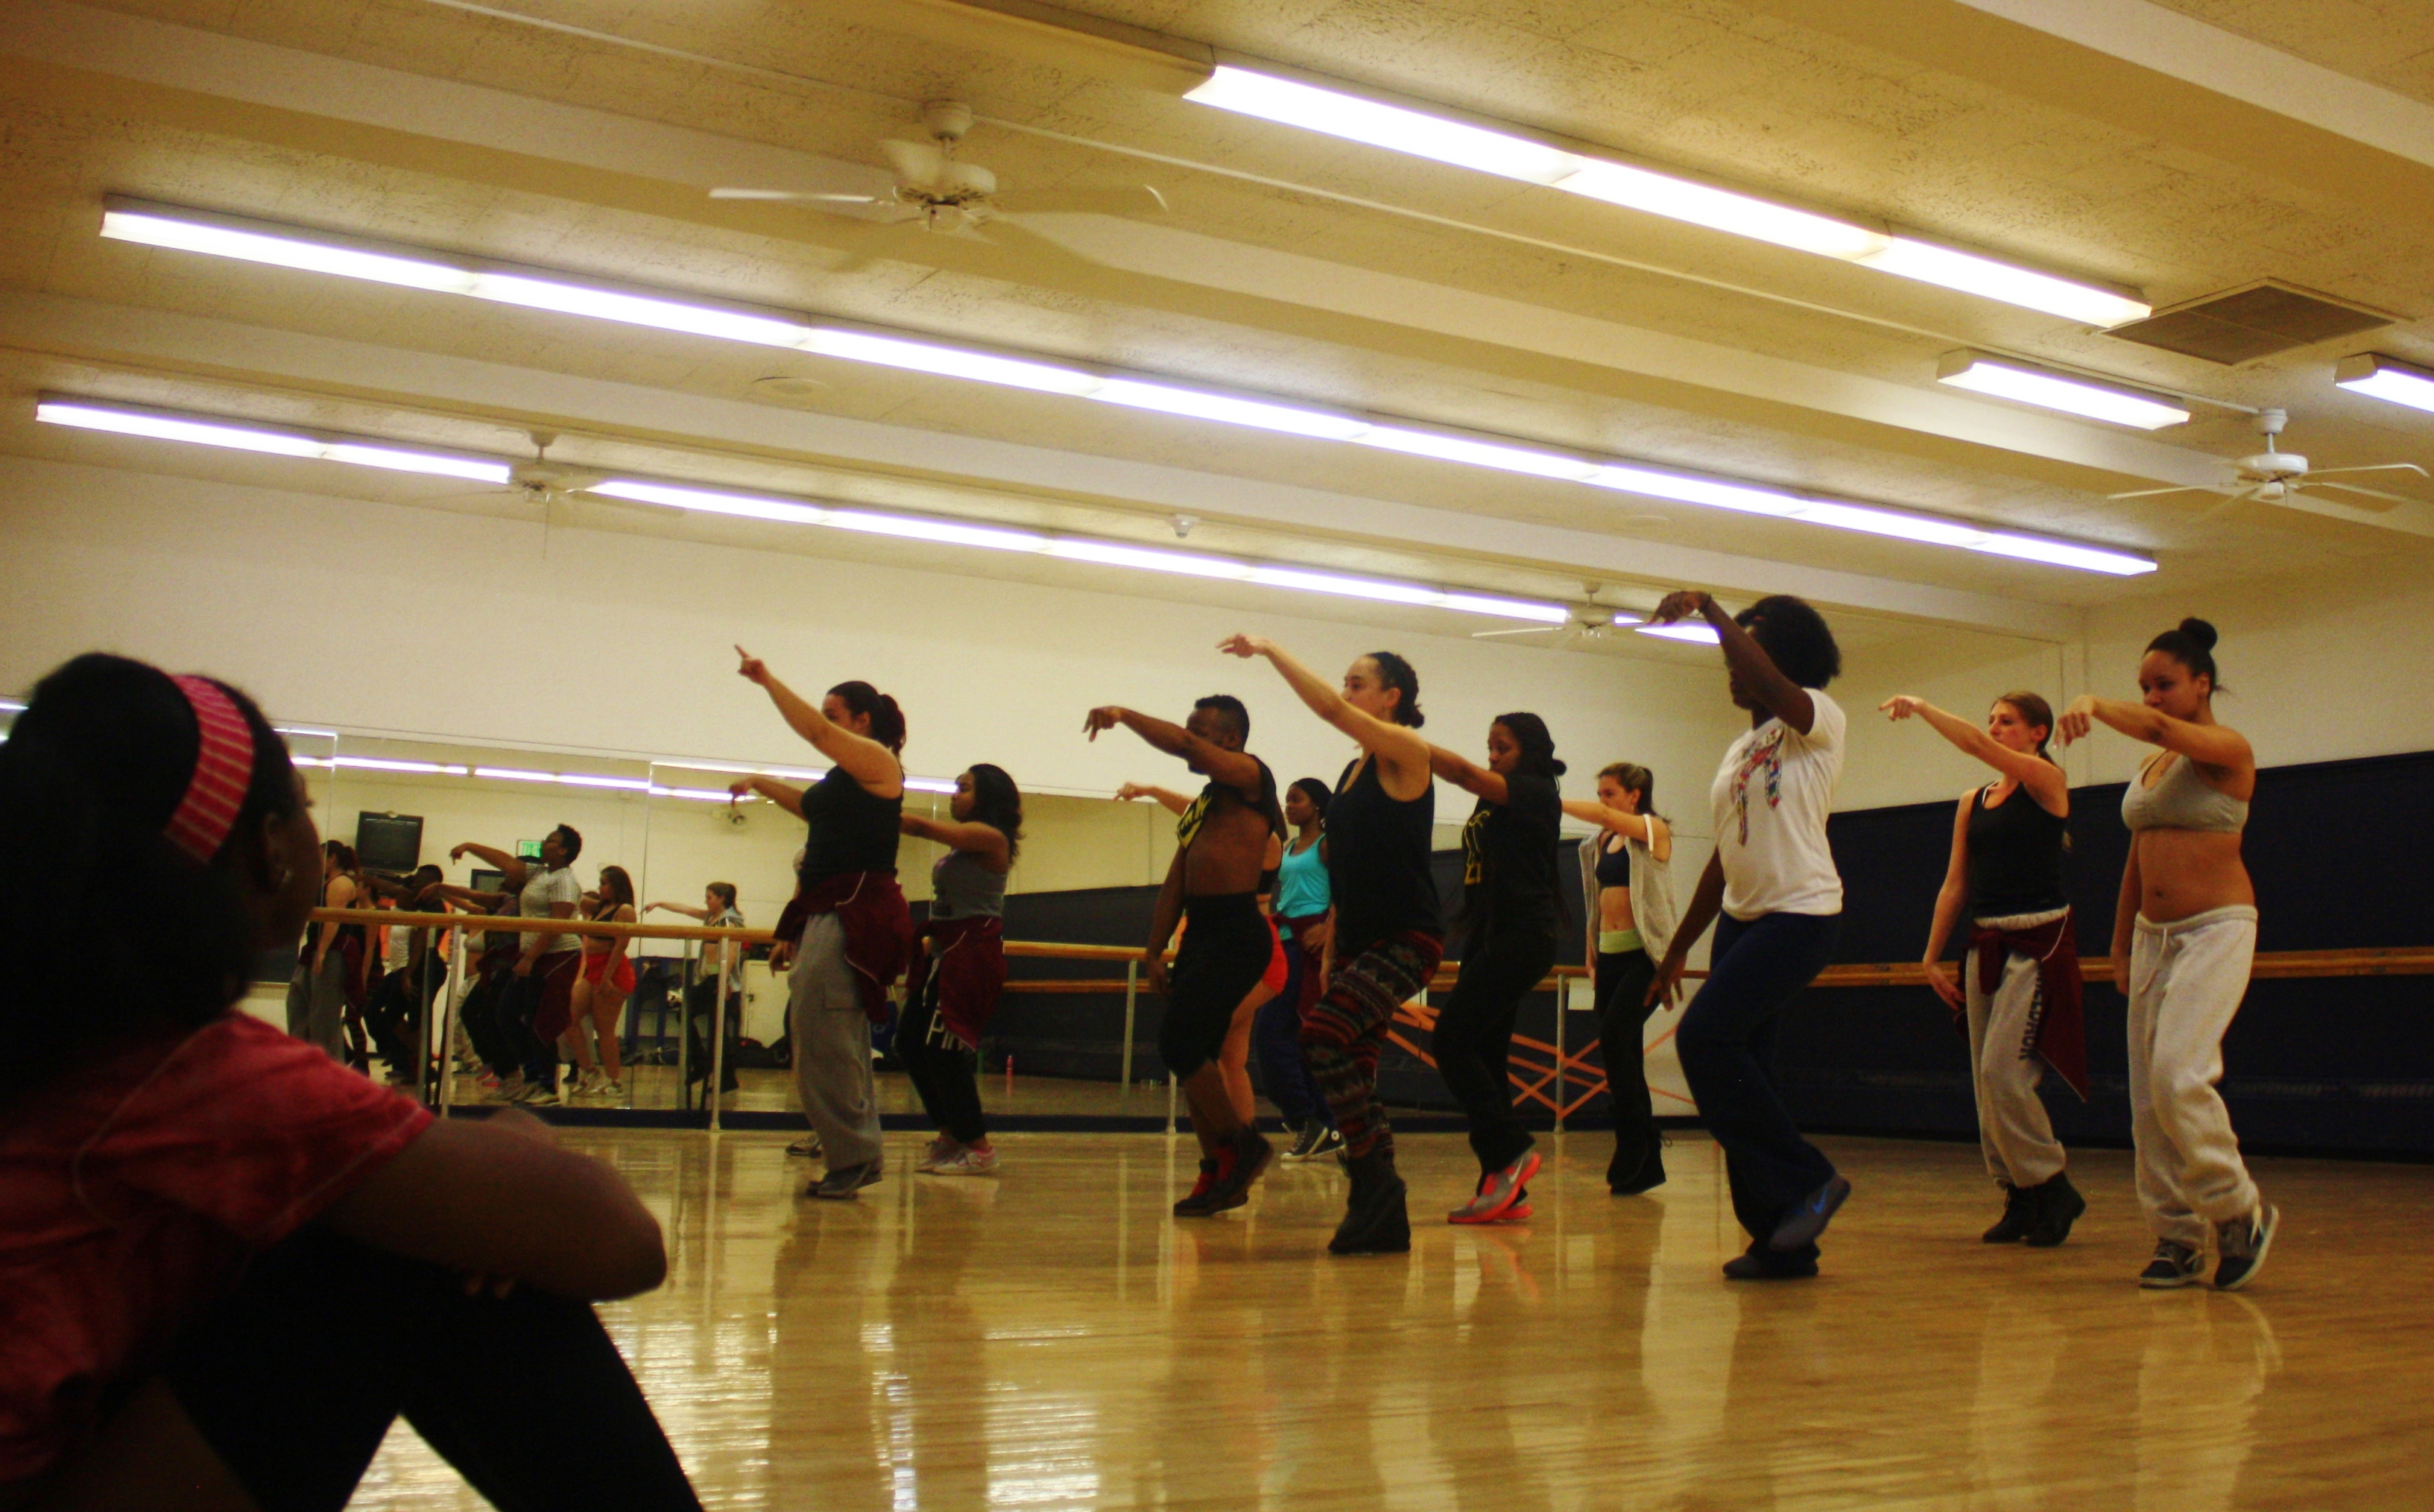 Dance Auditions Can be Somewhat of a Culture Shock: Campus Dance Group Holds First Spring Semester Auditions